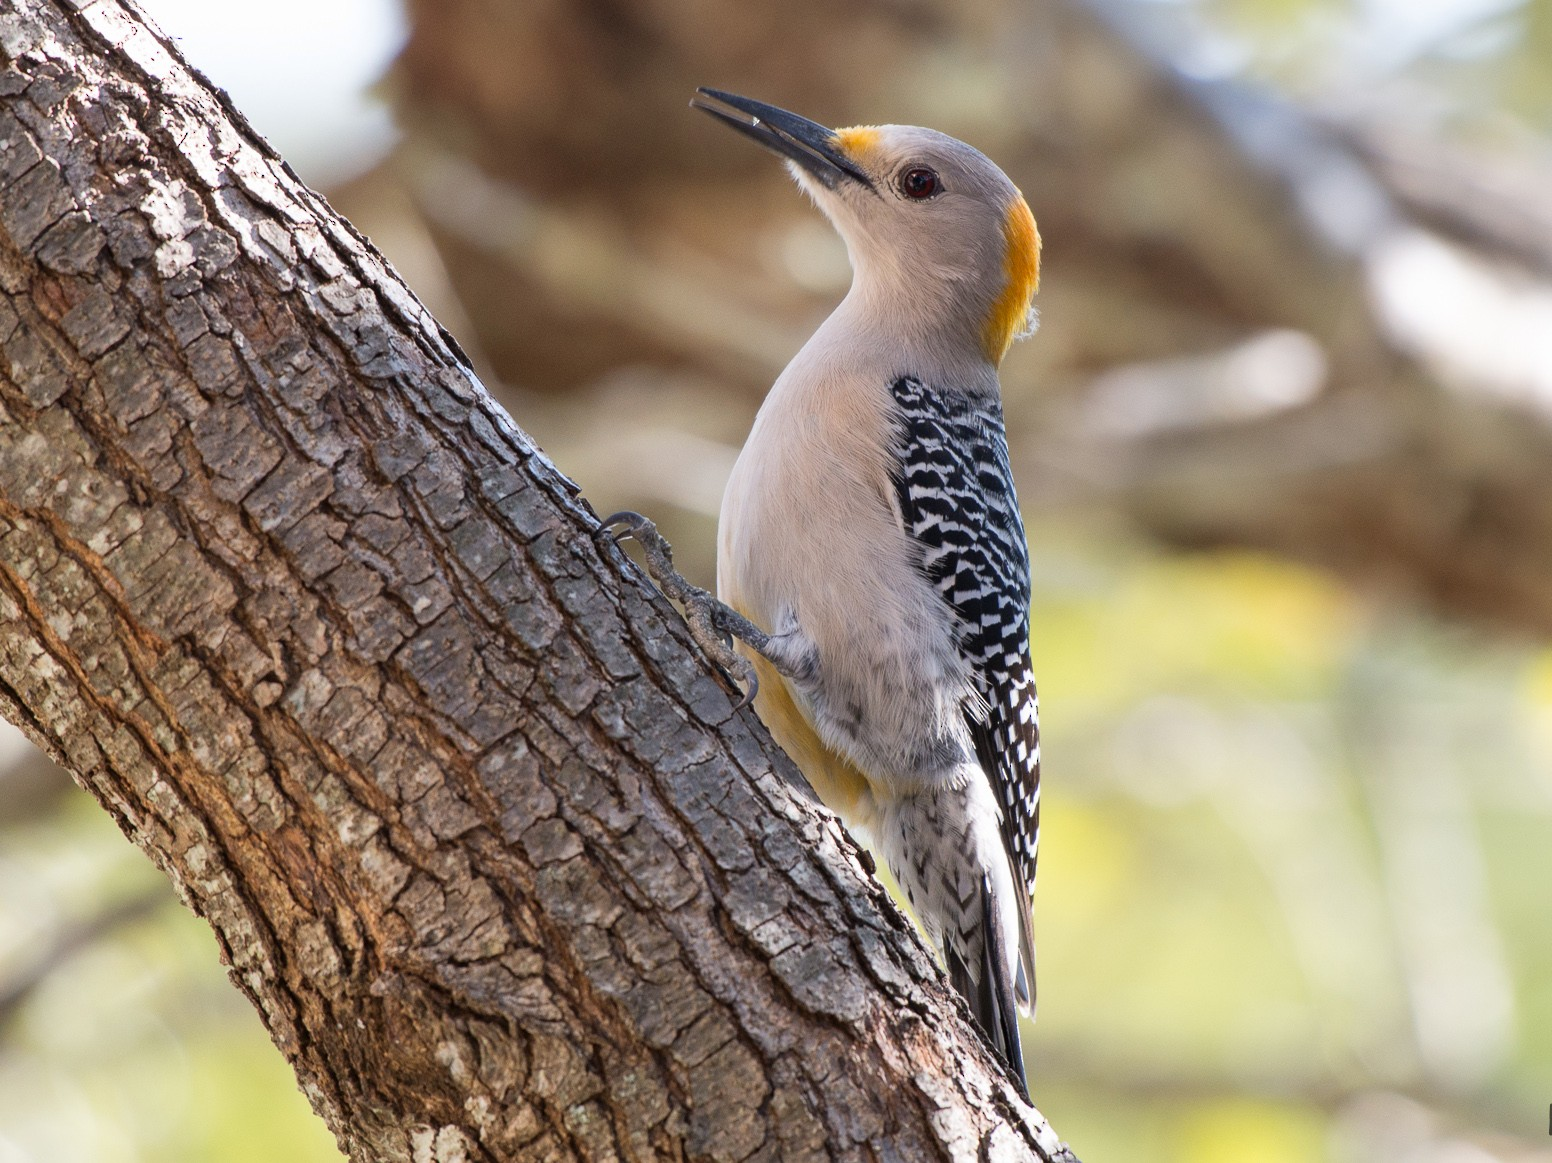 Golden-fronted Woodpecker - Suzie McCann